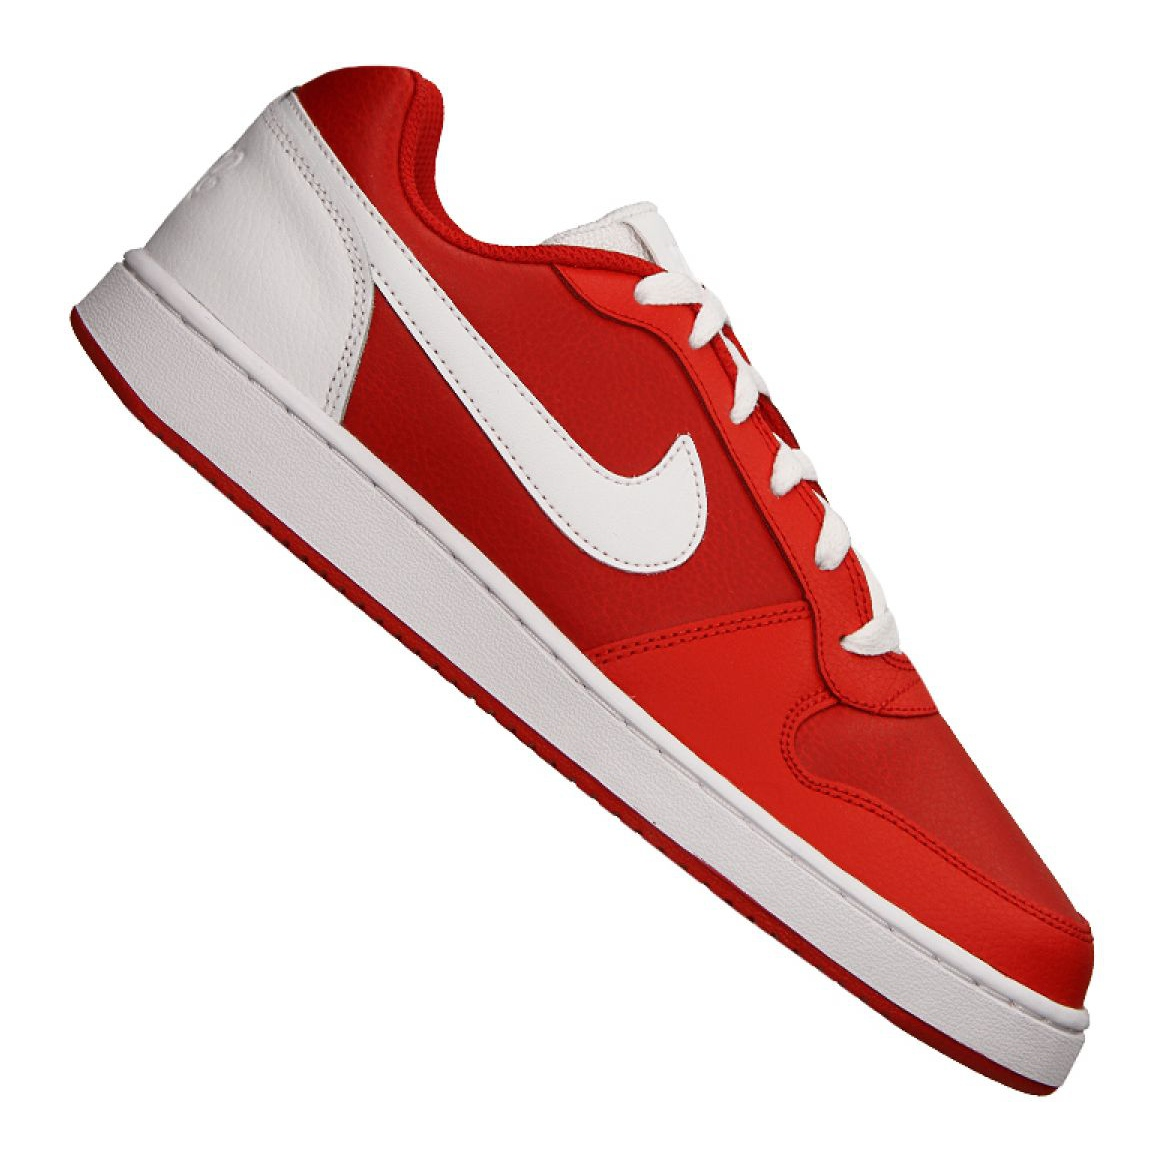 Nike Low Chaussures 600 Rouge M Ebernon Aq1775 TFlcJ13K